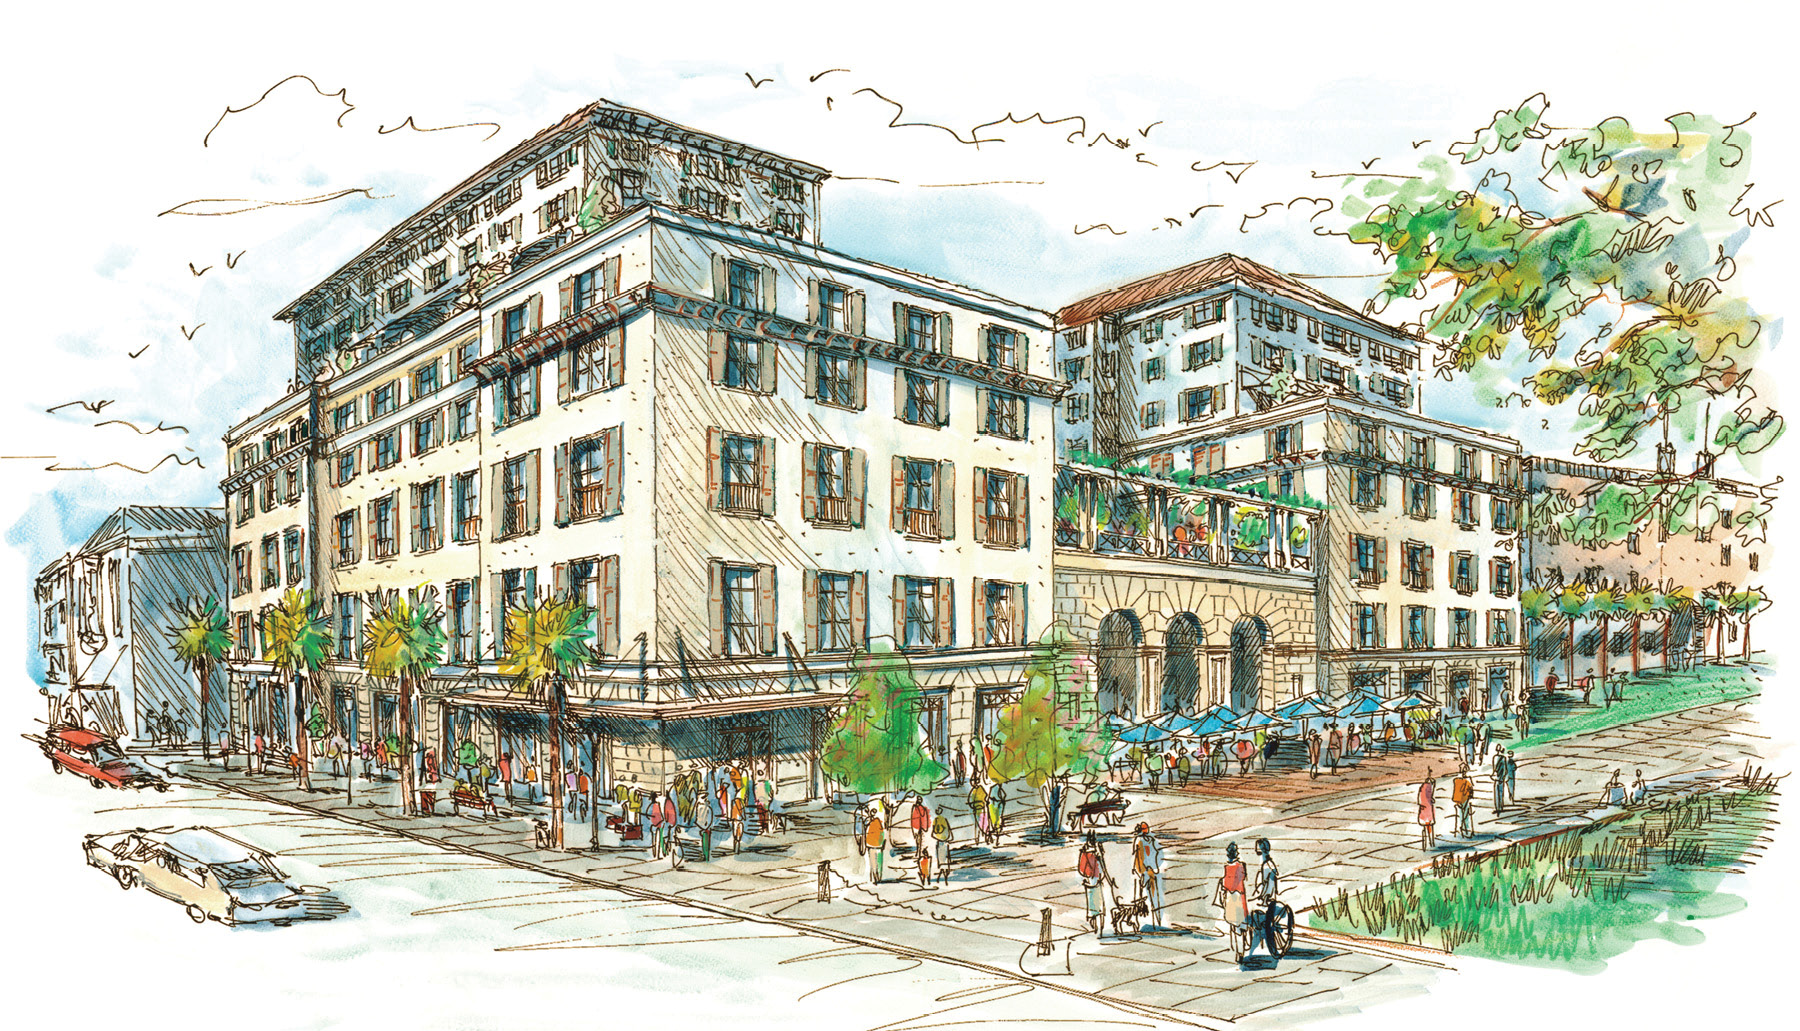 The luxury property will offer 179 guest quarters, two restaurants, three bars, a spa, a ballroom, and meeting spaces.